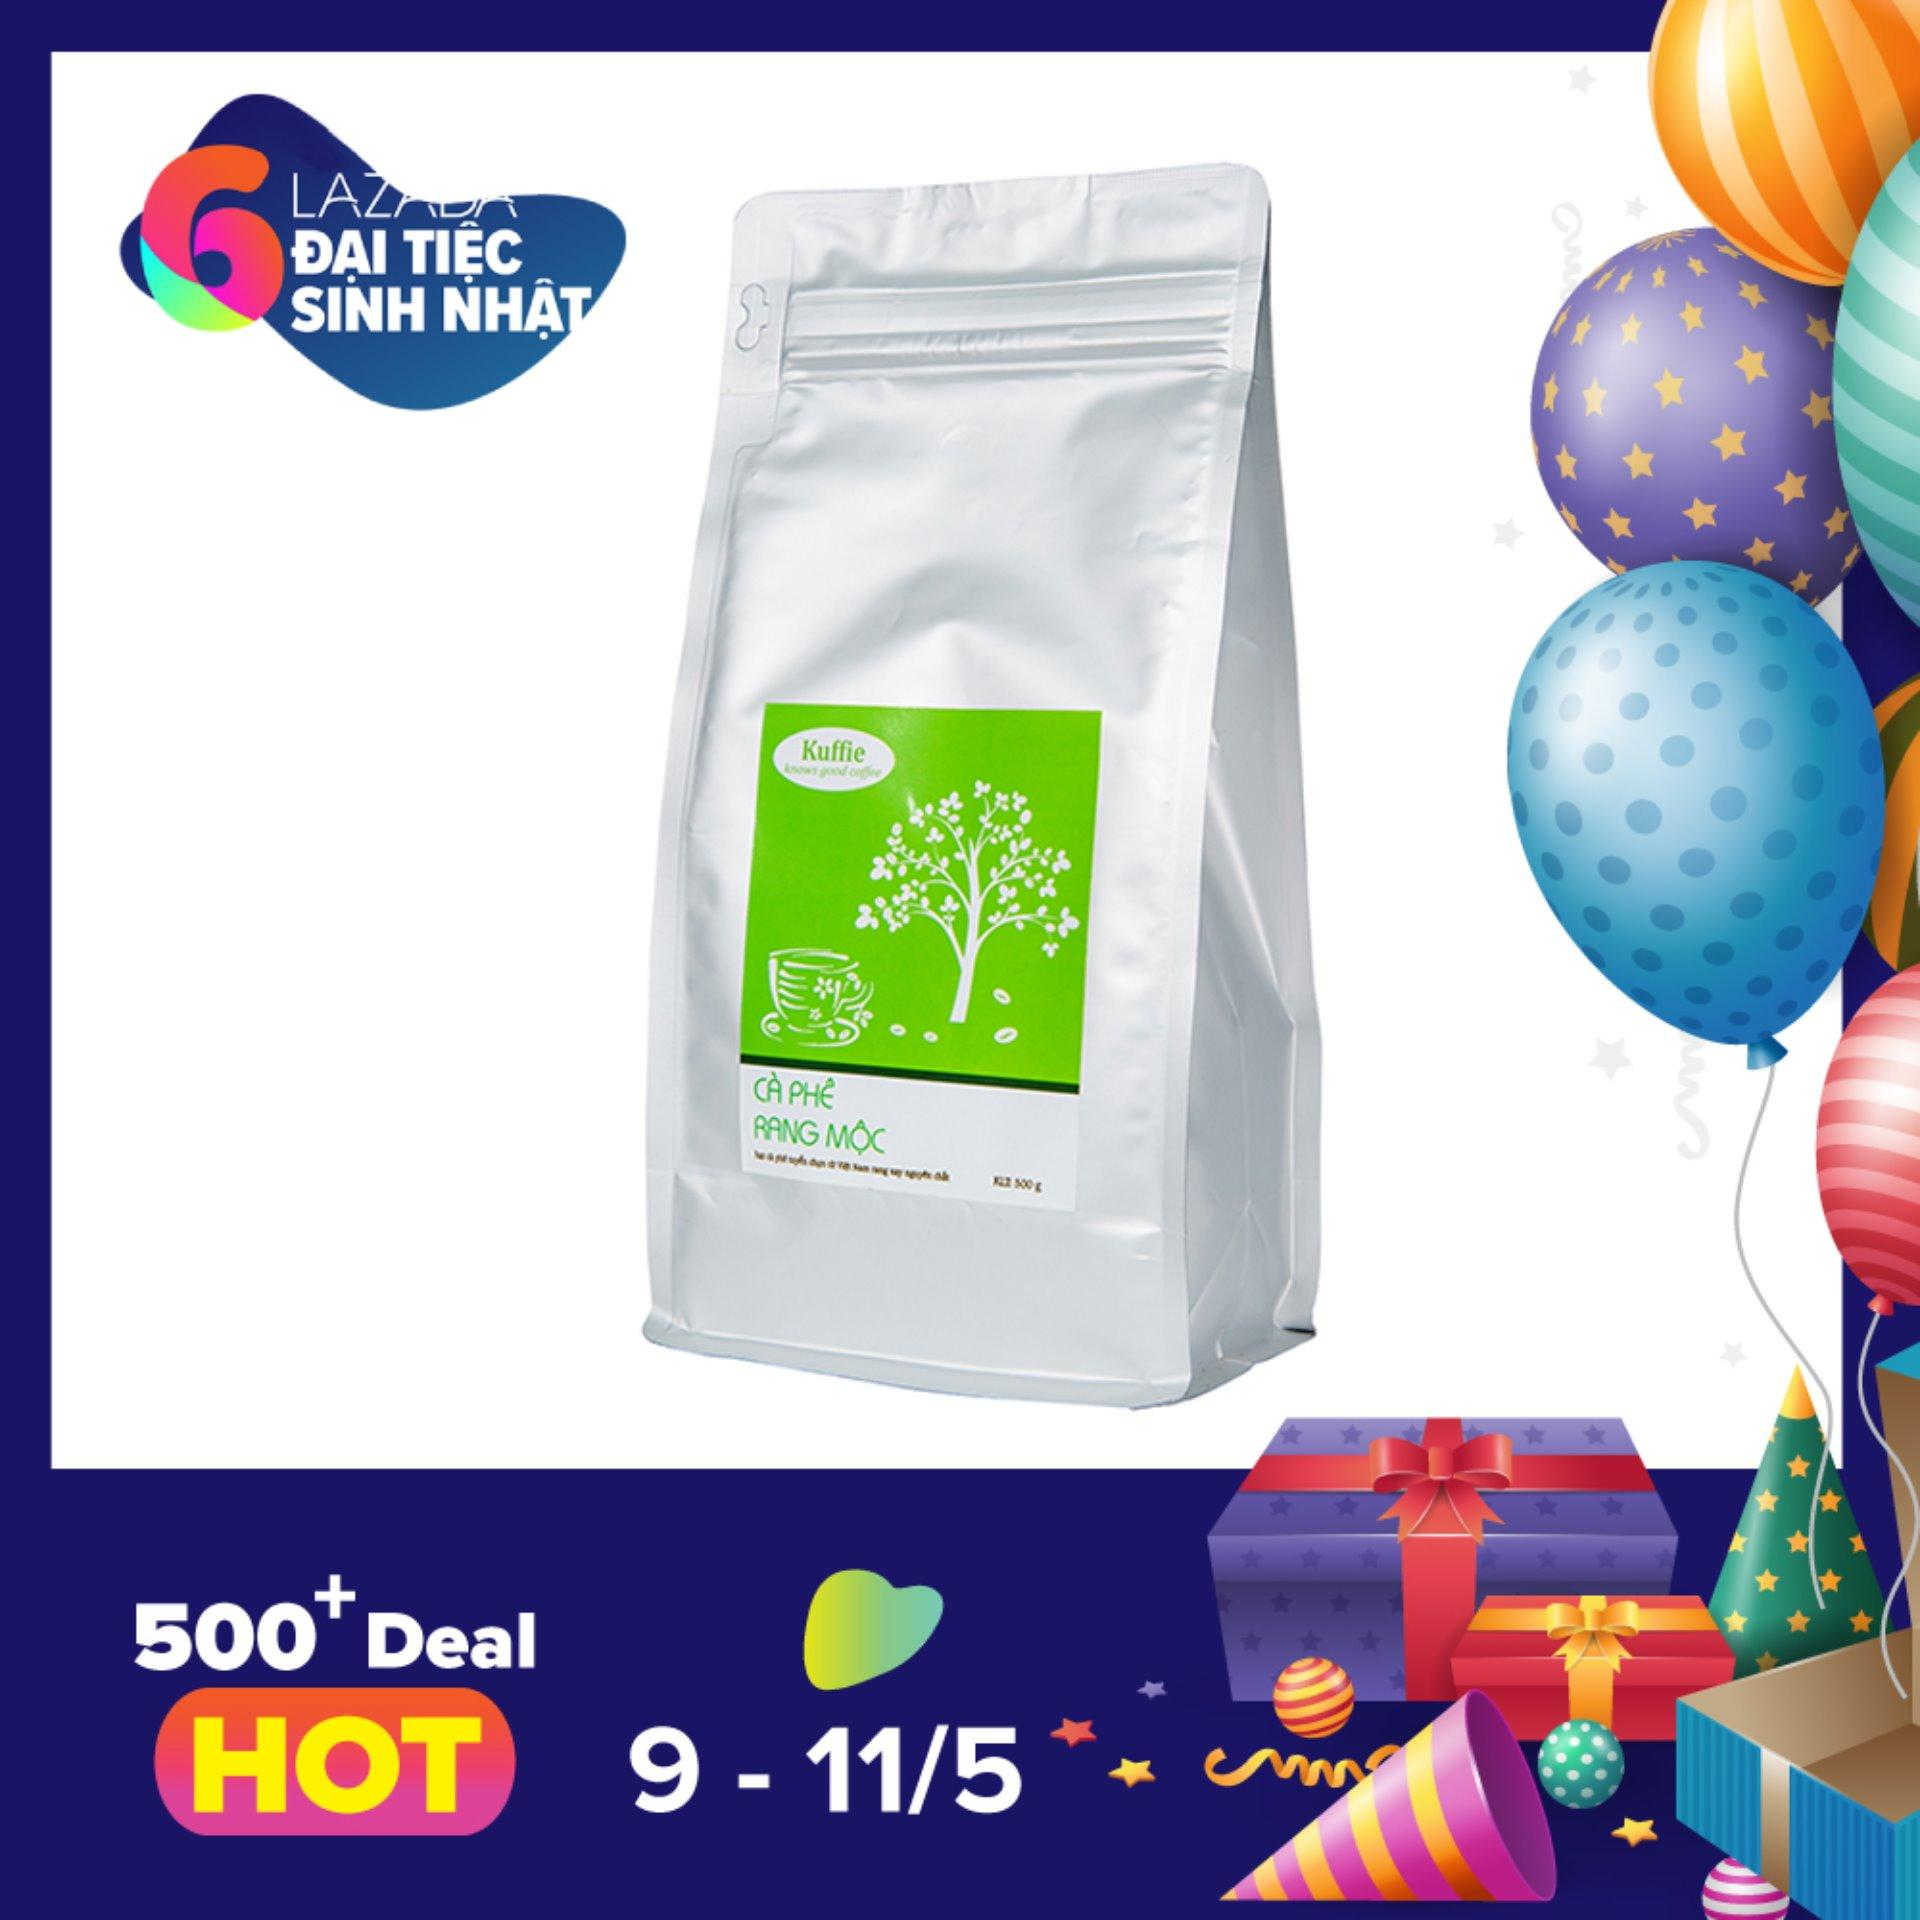 Mua Ca Phe Bột Kuffie Special 100 Pure Coffee Robusta Arabica 500G Kuffie Nguyên